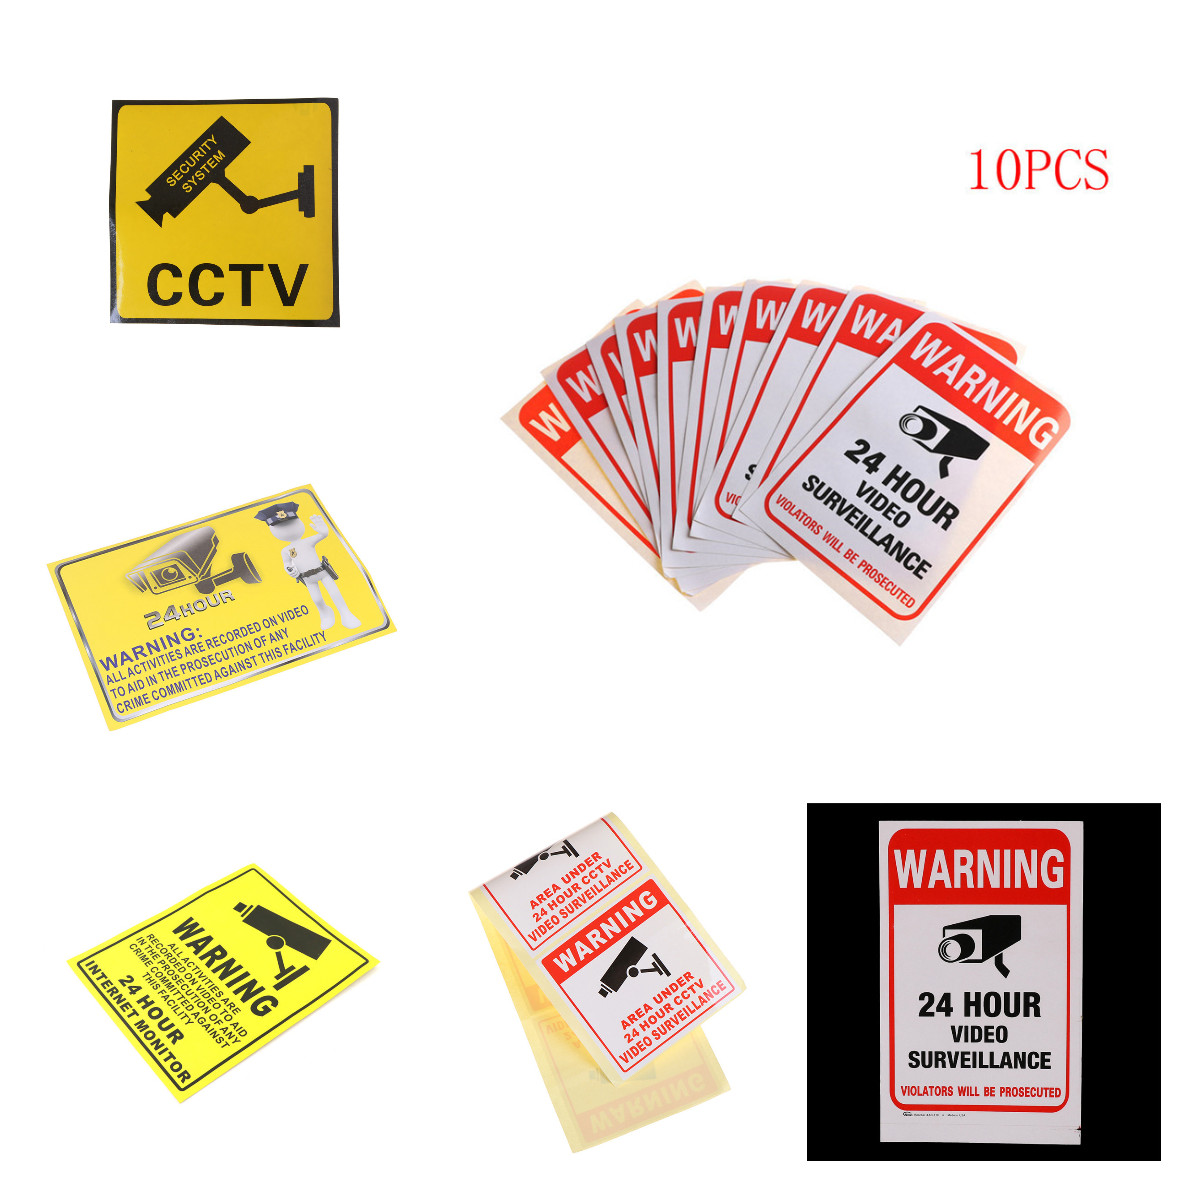 Warning Sticker 24H Video Camera System Warning Sign Wall Decal Surveillance Monitor Decal Public Area Security Wall Sticker